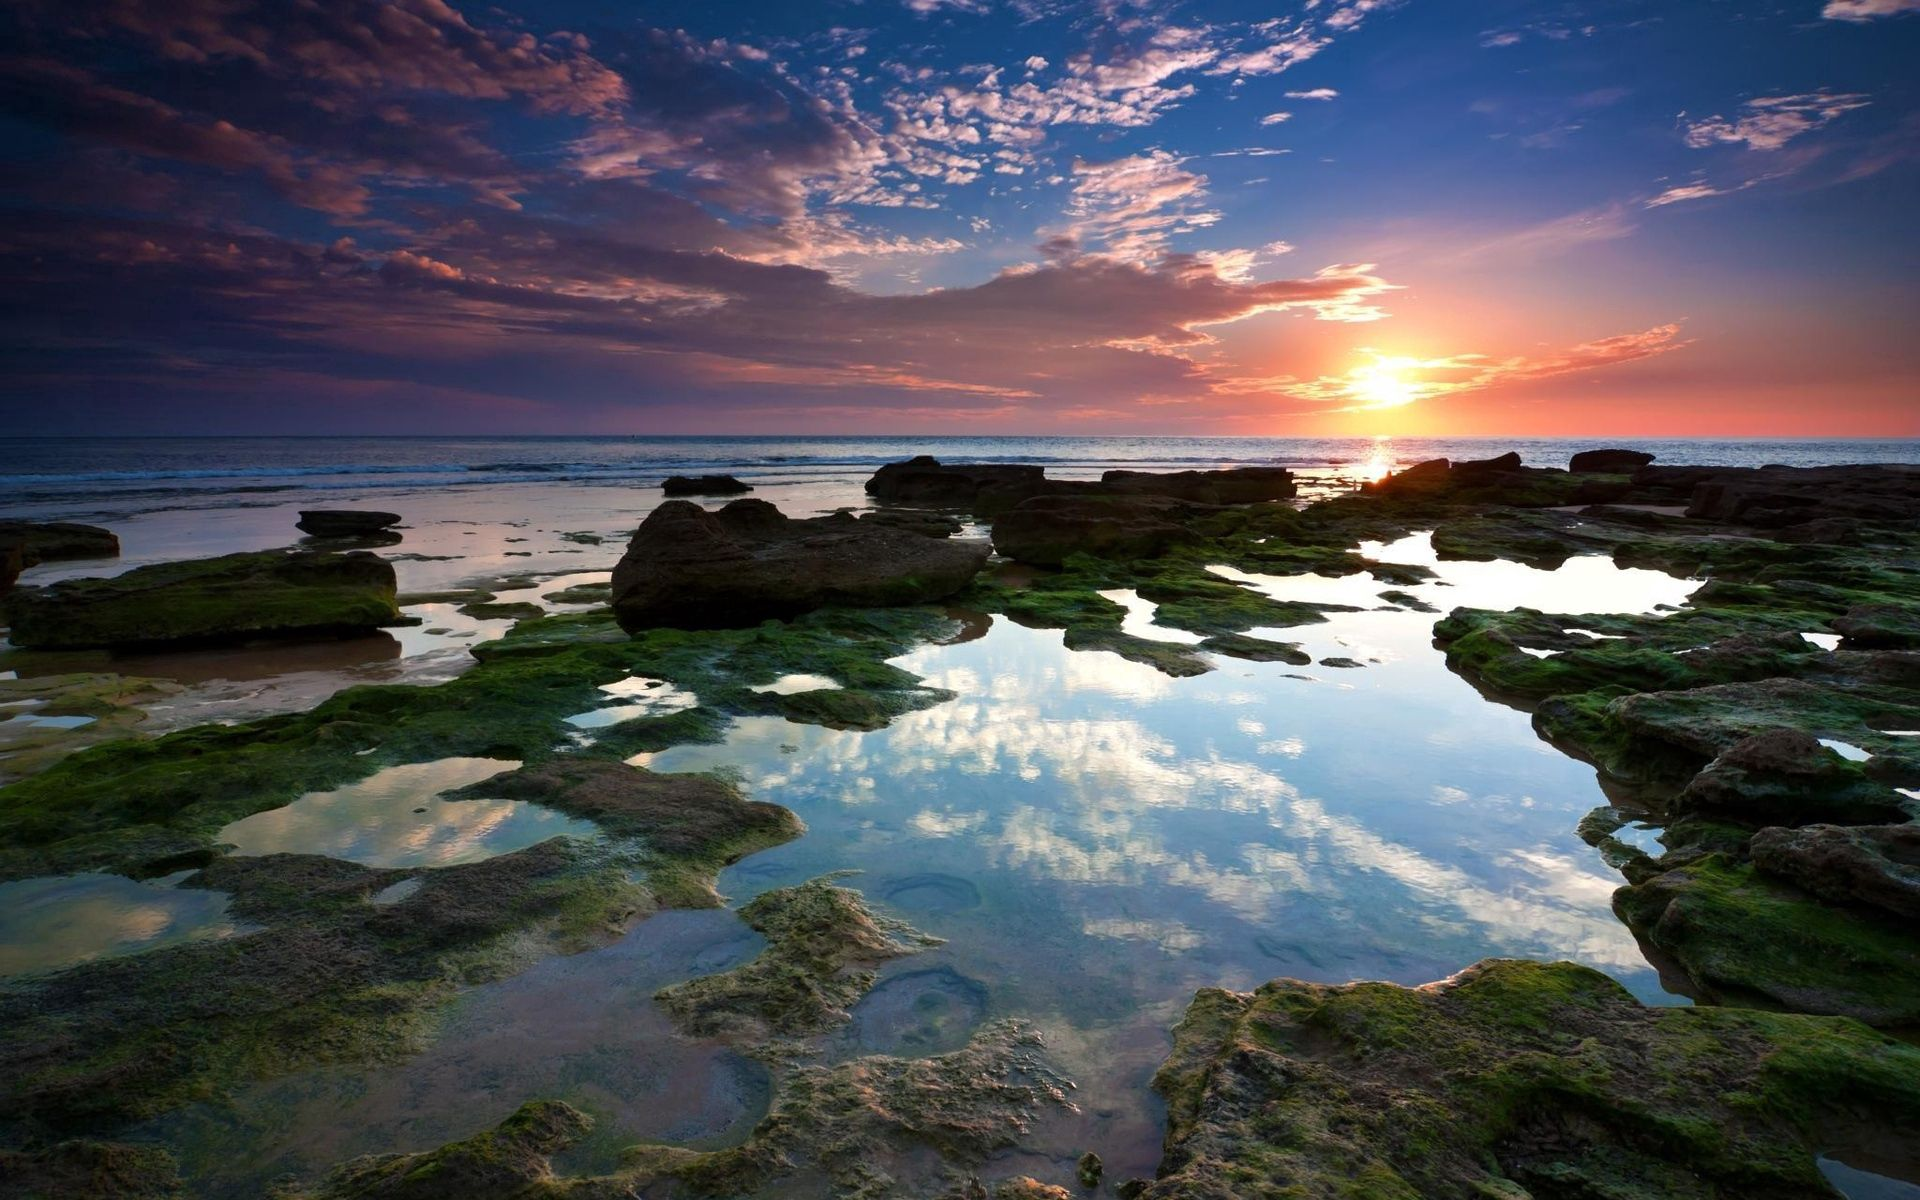 138378 download wallpaper Nature, Reefs, Sunset, Shine, Light, Low Tide, Puddles, Rocks, Stones, Sea, Shore, Bank, Evening, Silence, Sky, Sun screensavers and pictures for free